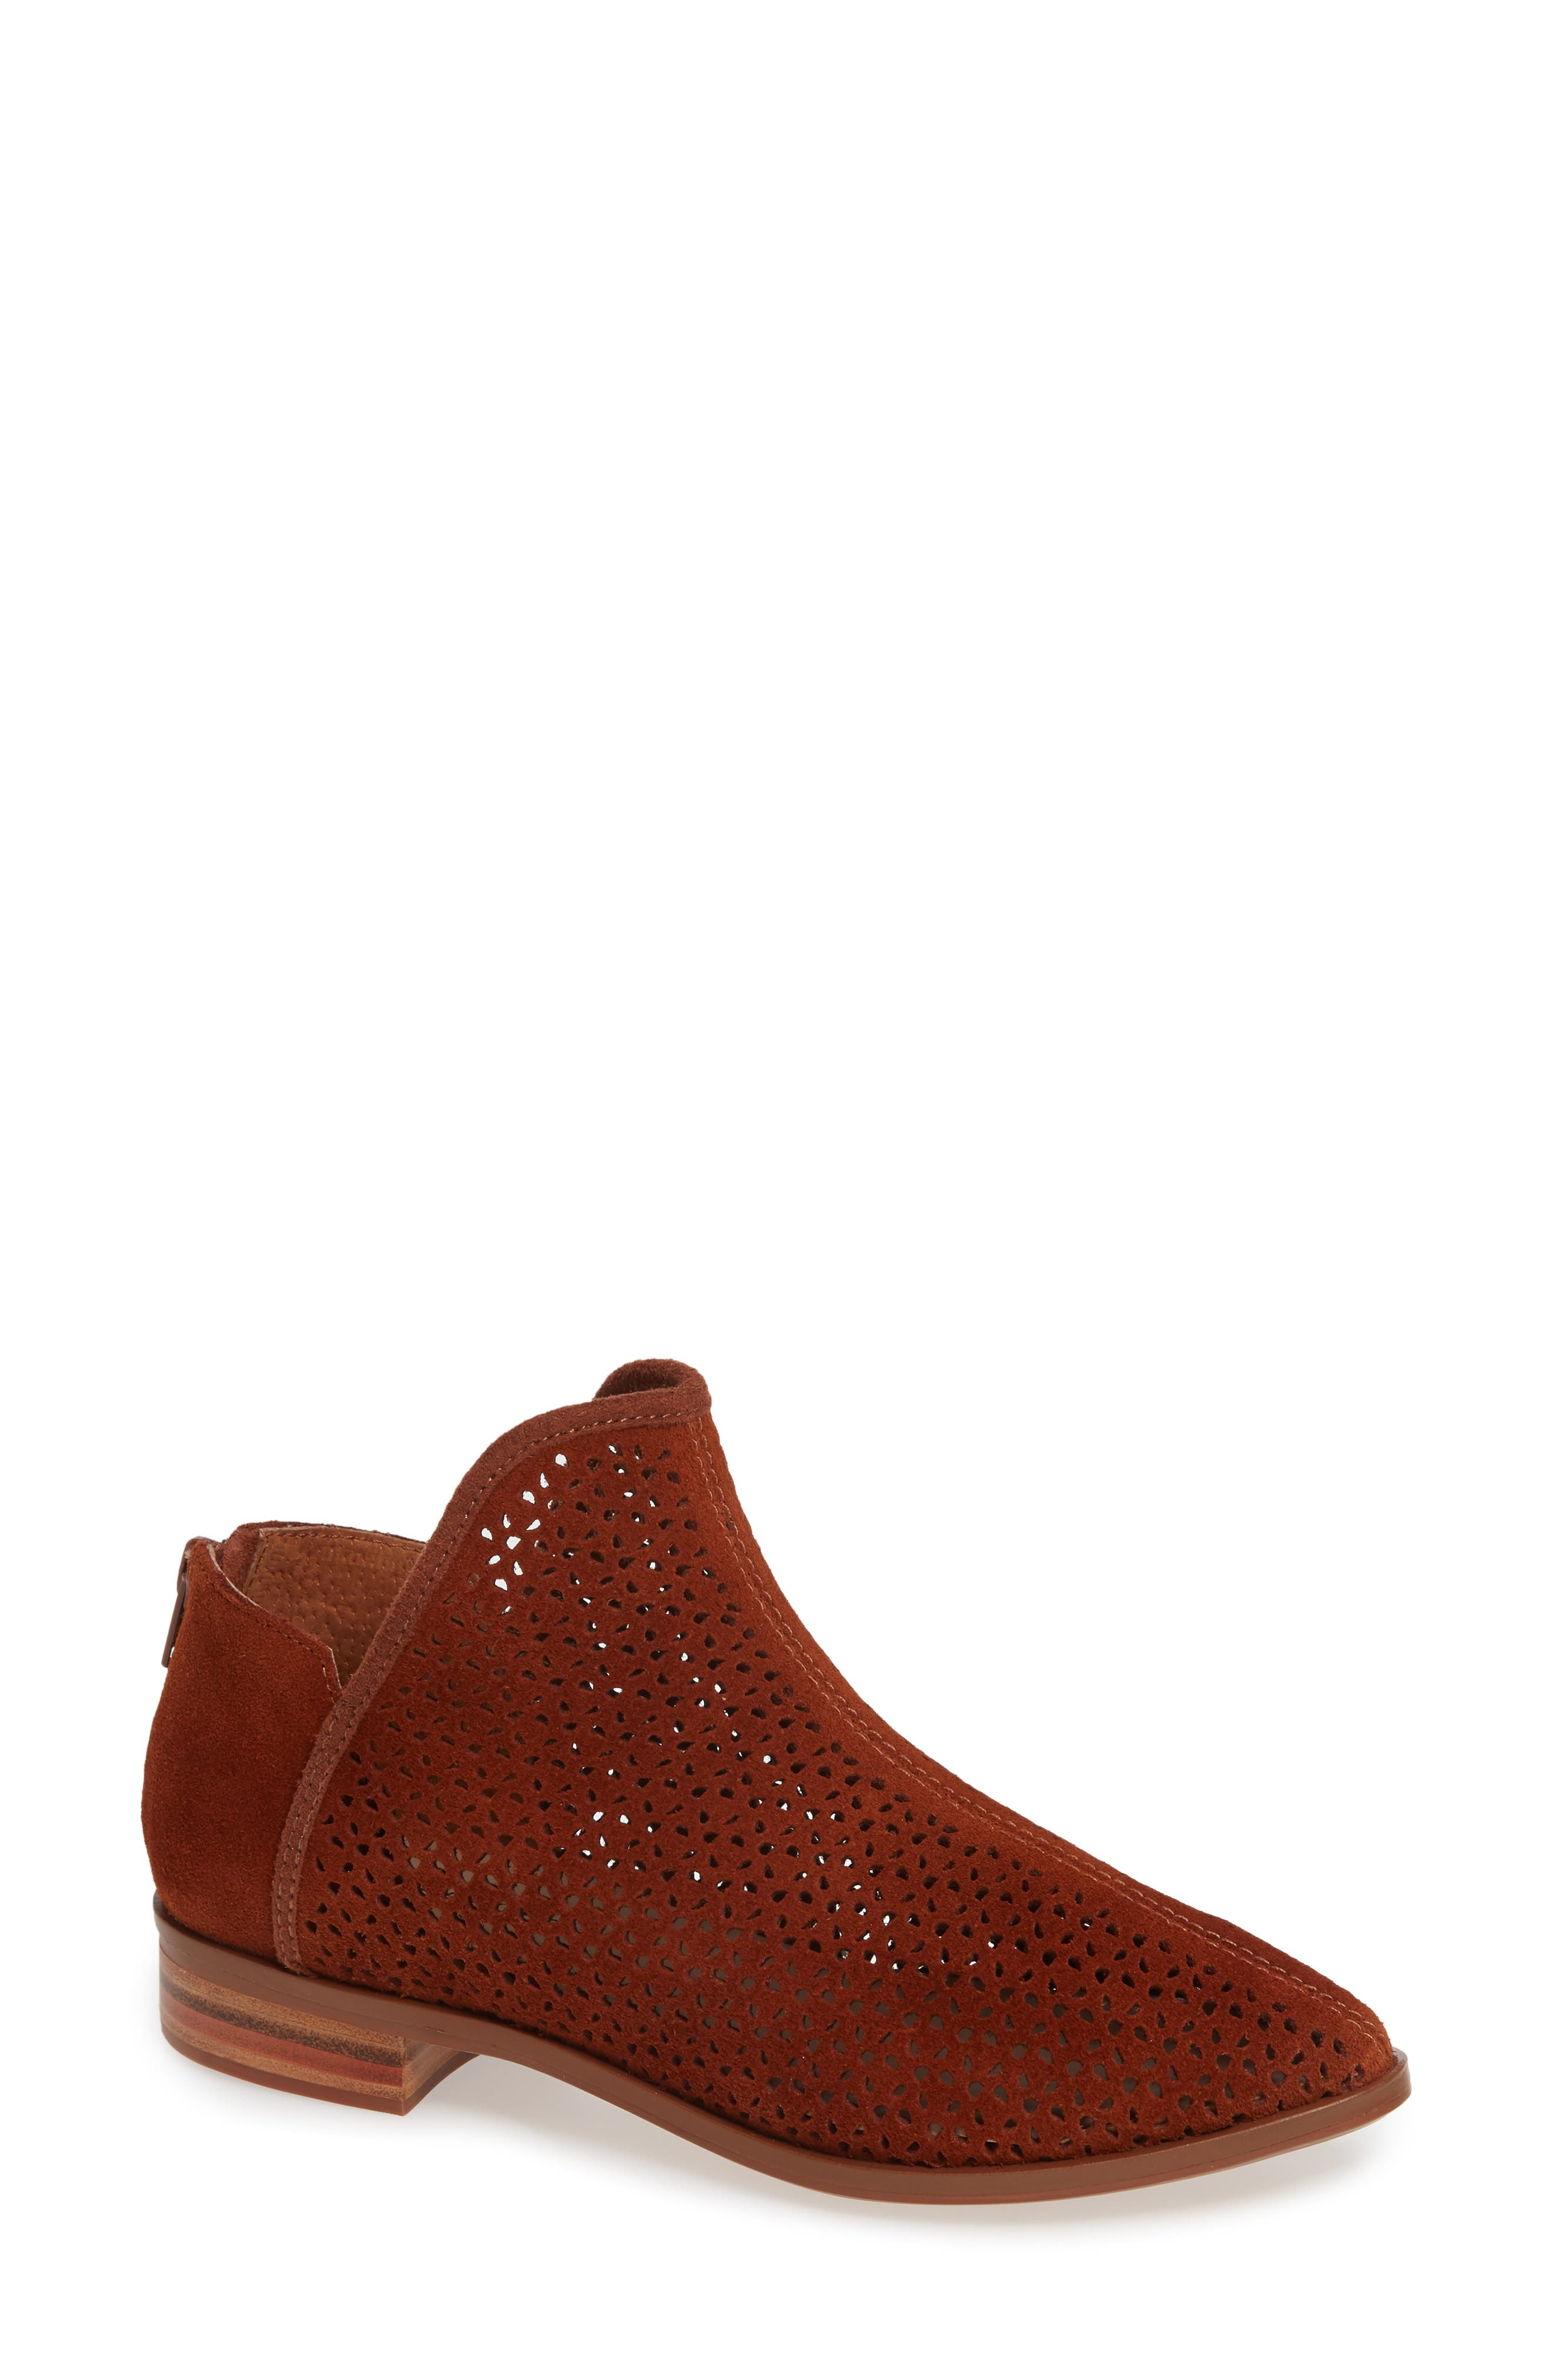 Kelsi Dagger Brooklyn Alley Perforated Bootie- Brown